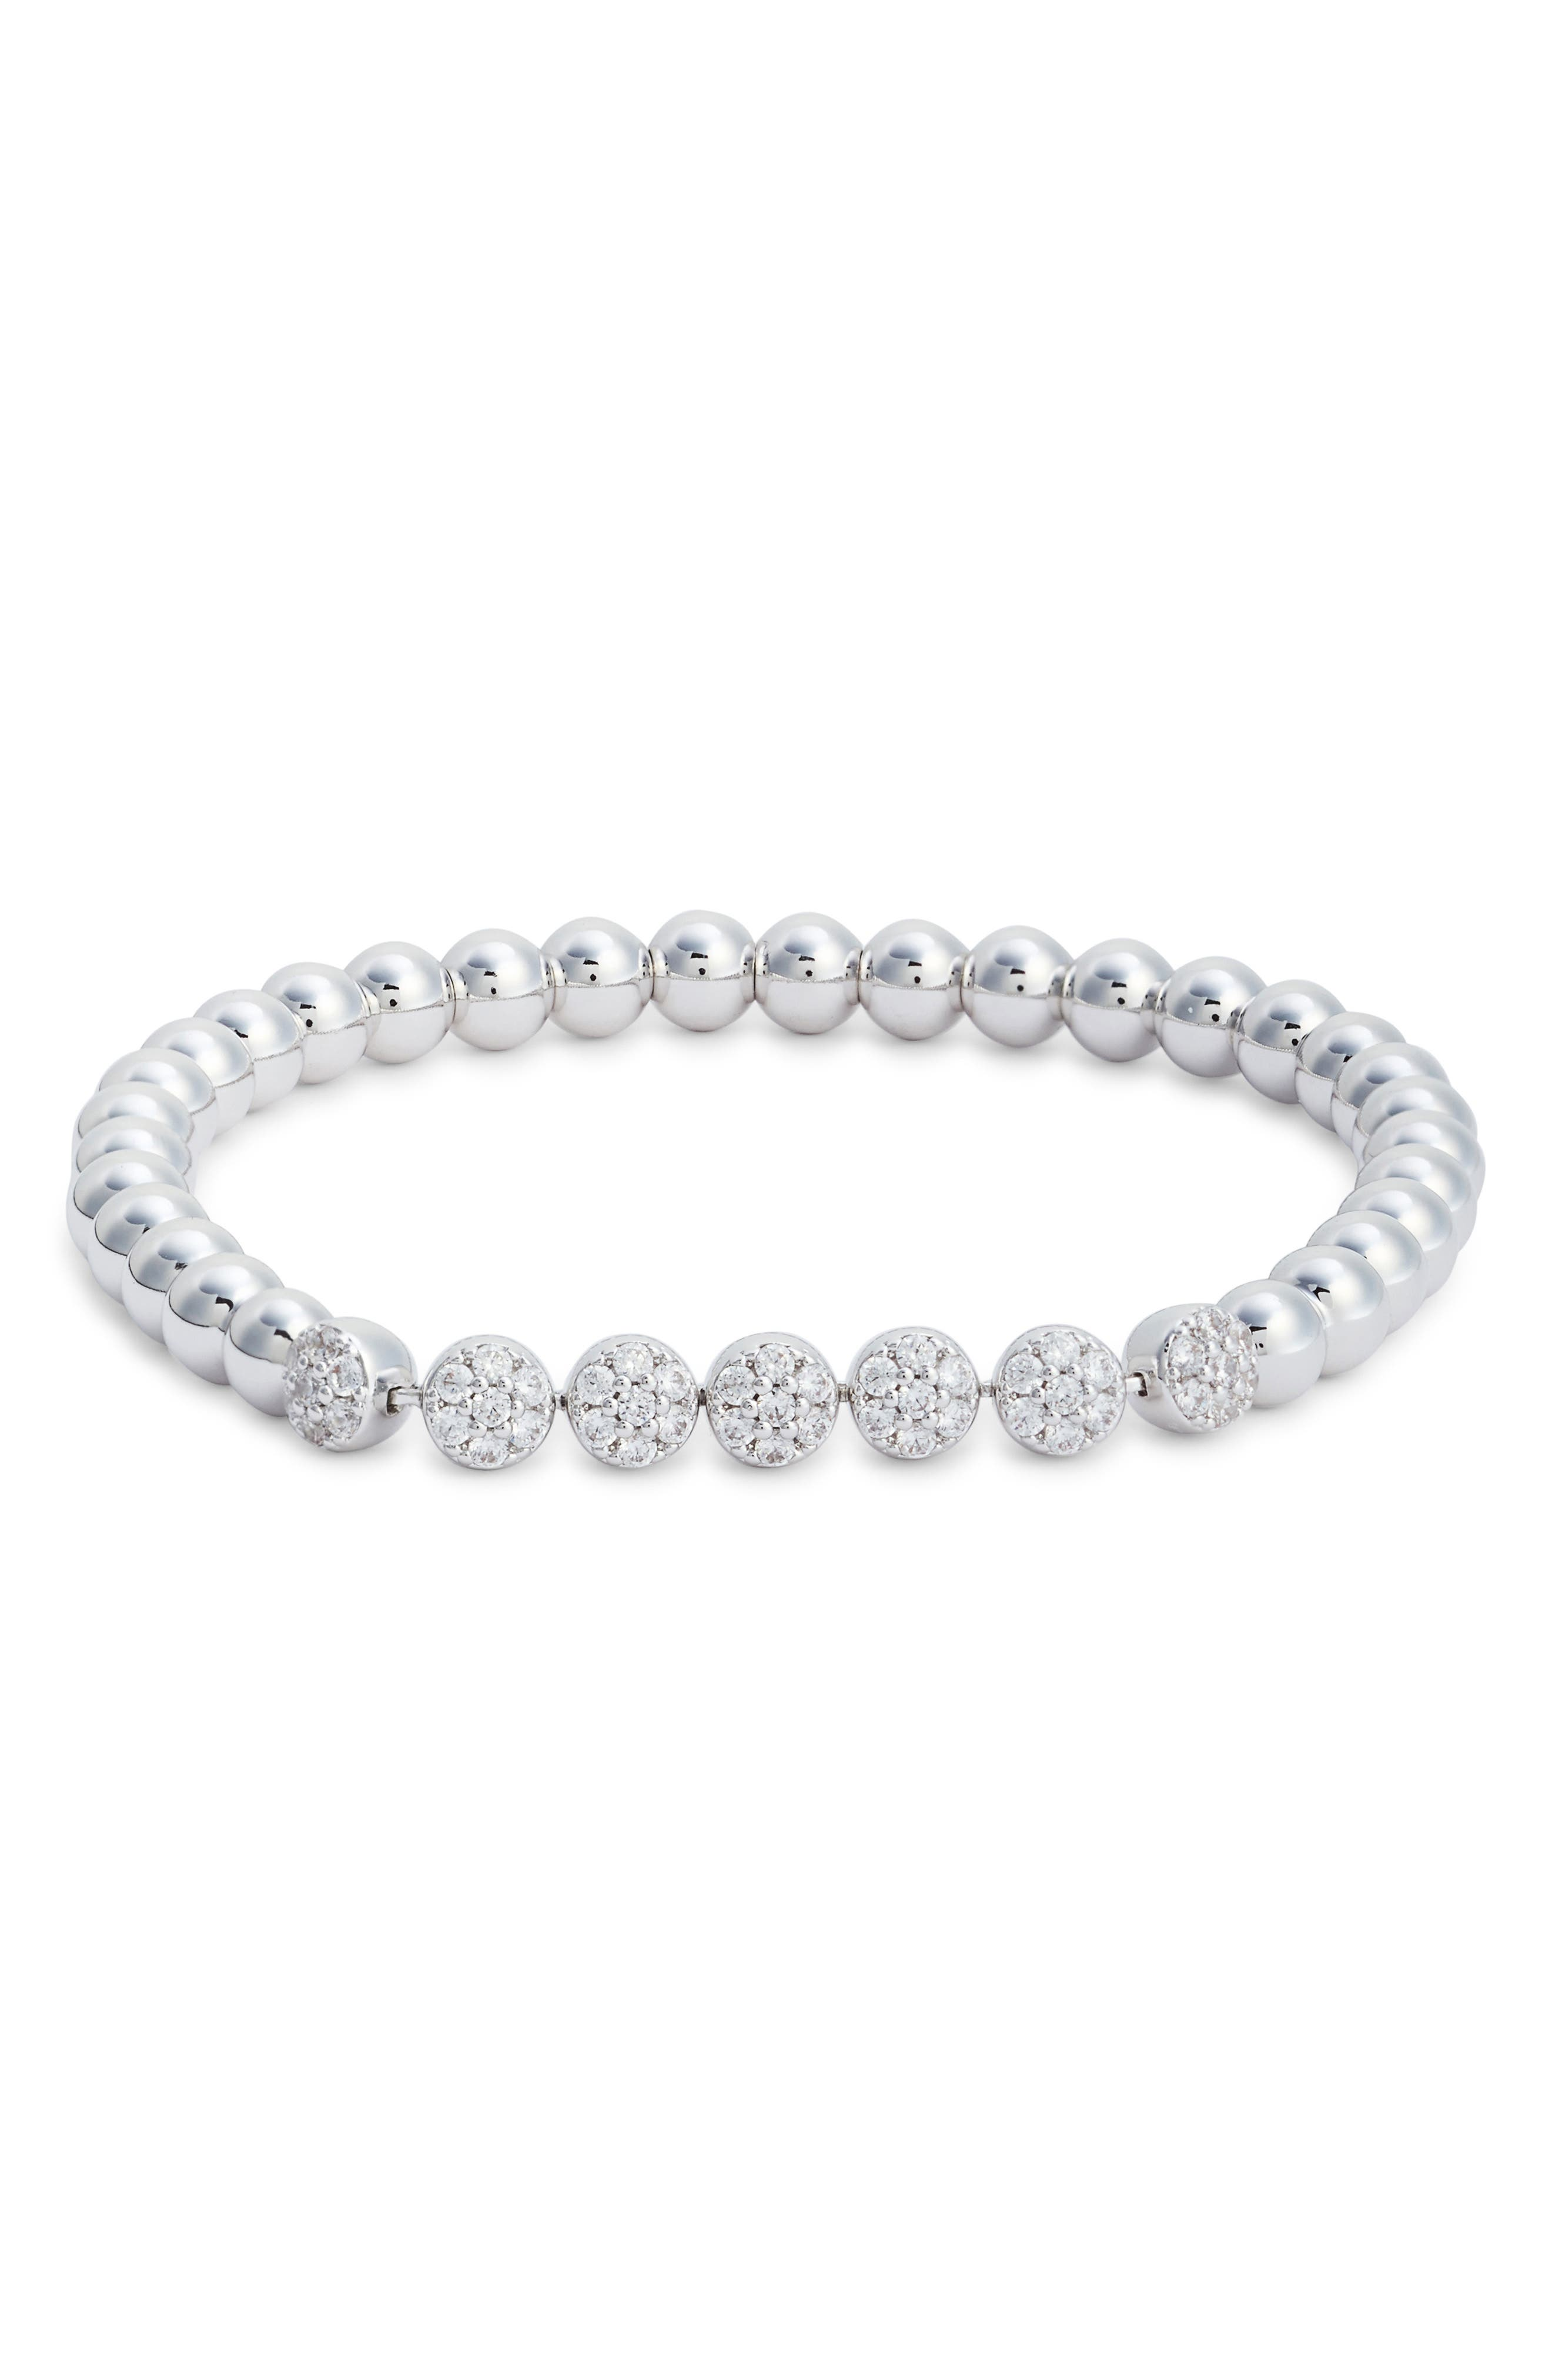 Cubic Zirconia Bracelet,                         Main,                         color,